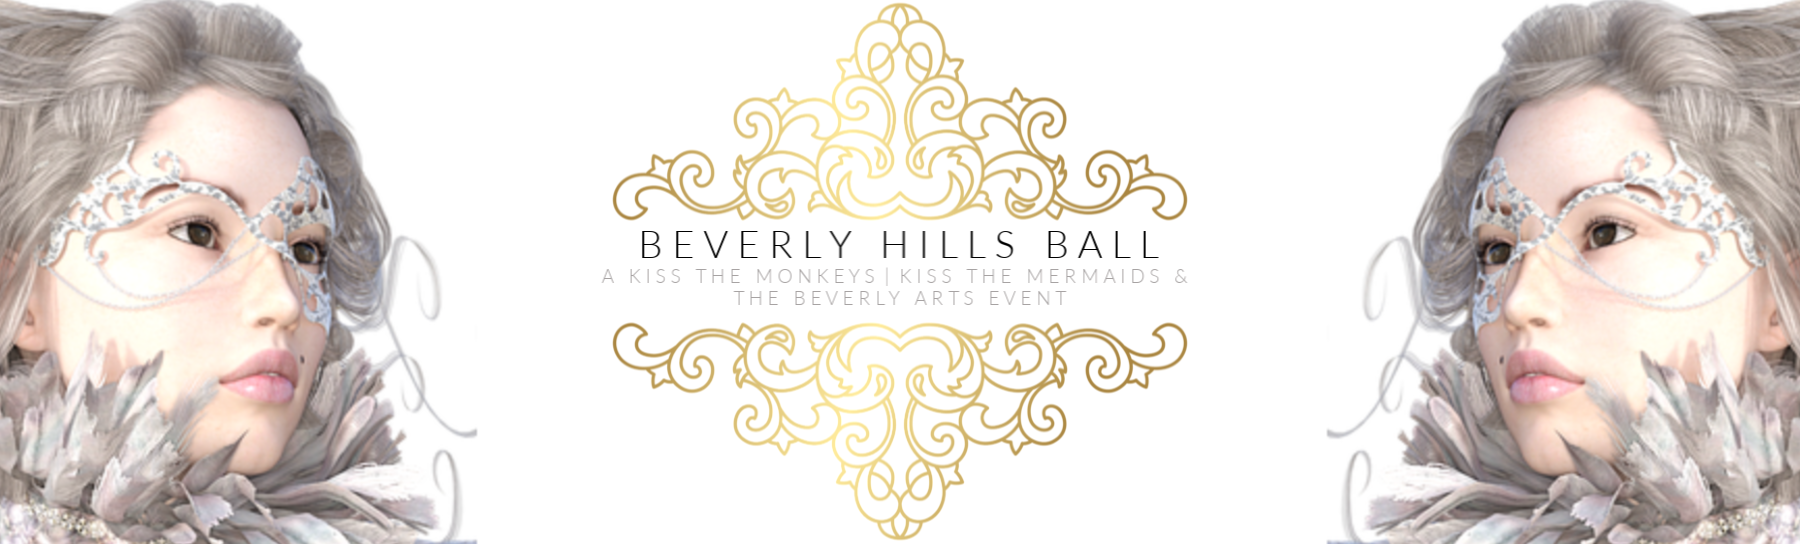 persian-medium-beverly-hills-ball.png